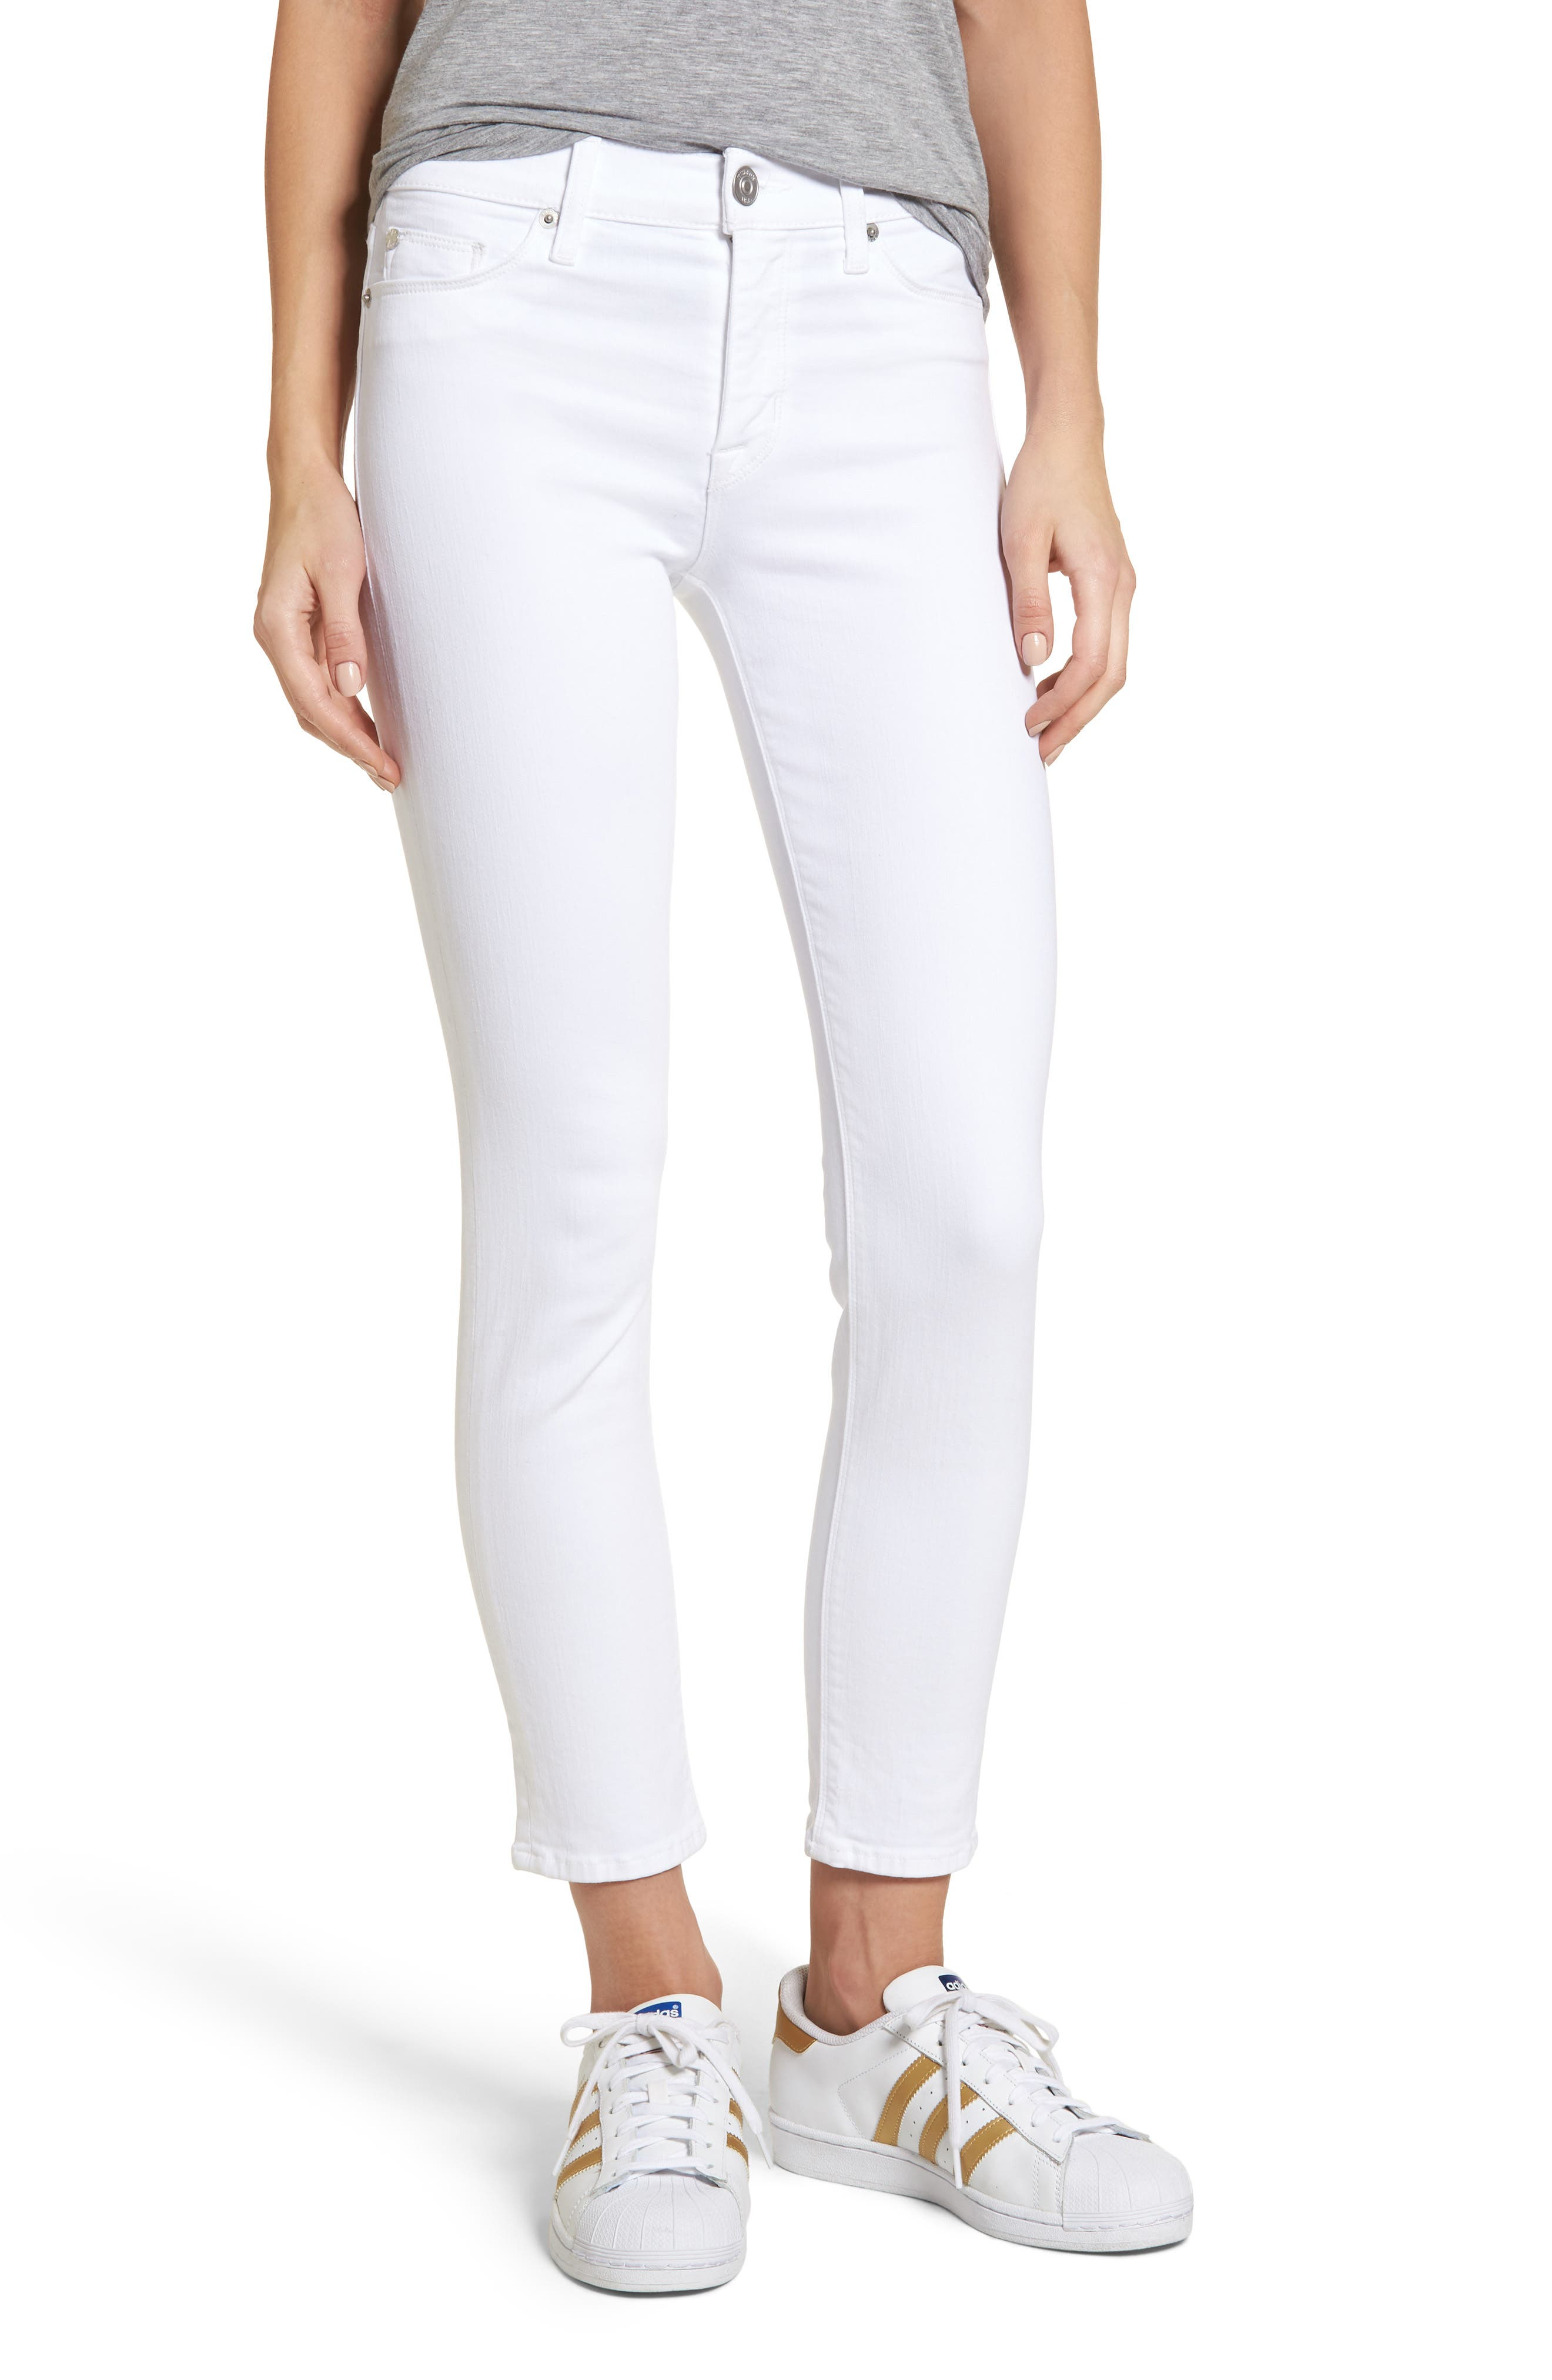 Tally Ankle Skinny Jeans,                             Main thumbnail 1, color,                             110